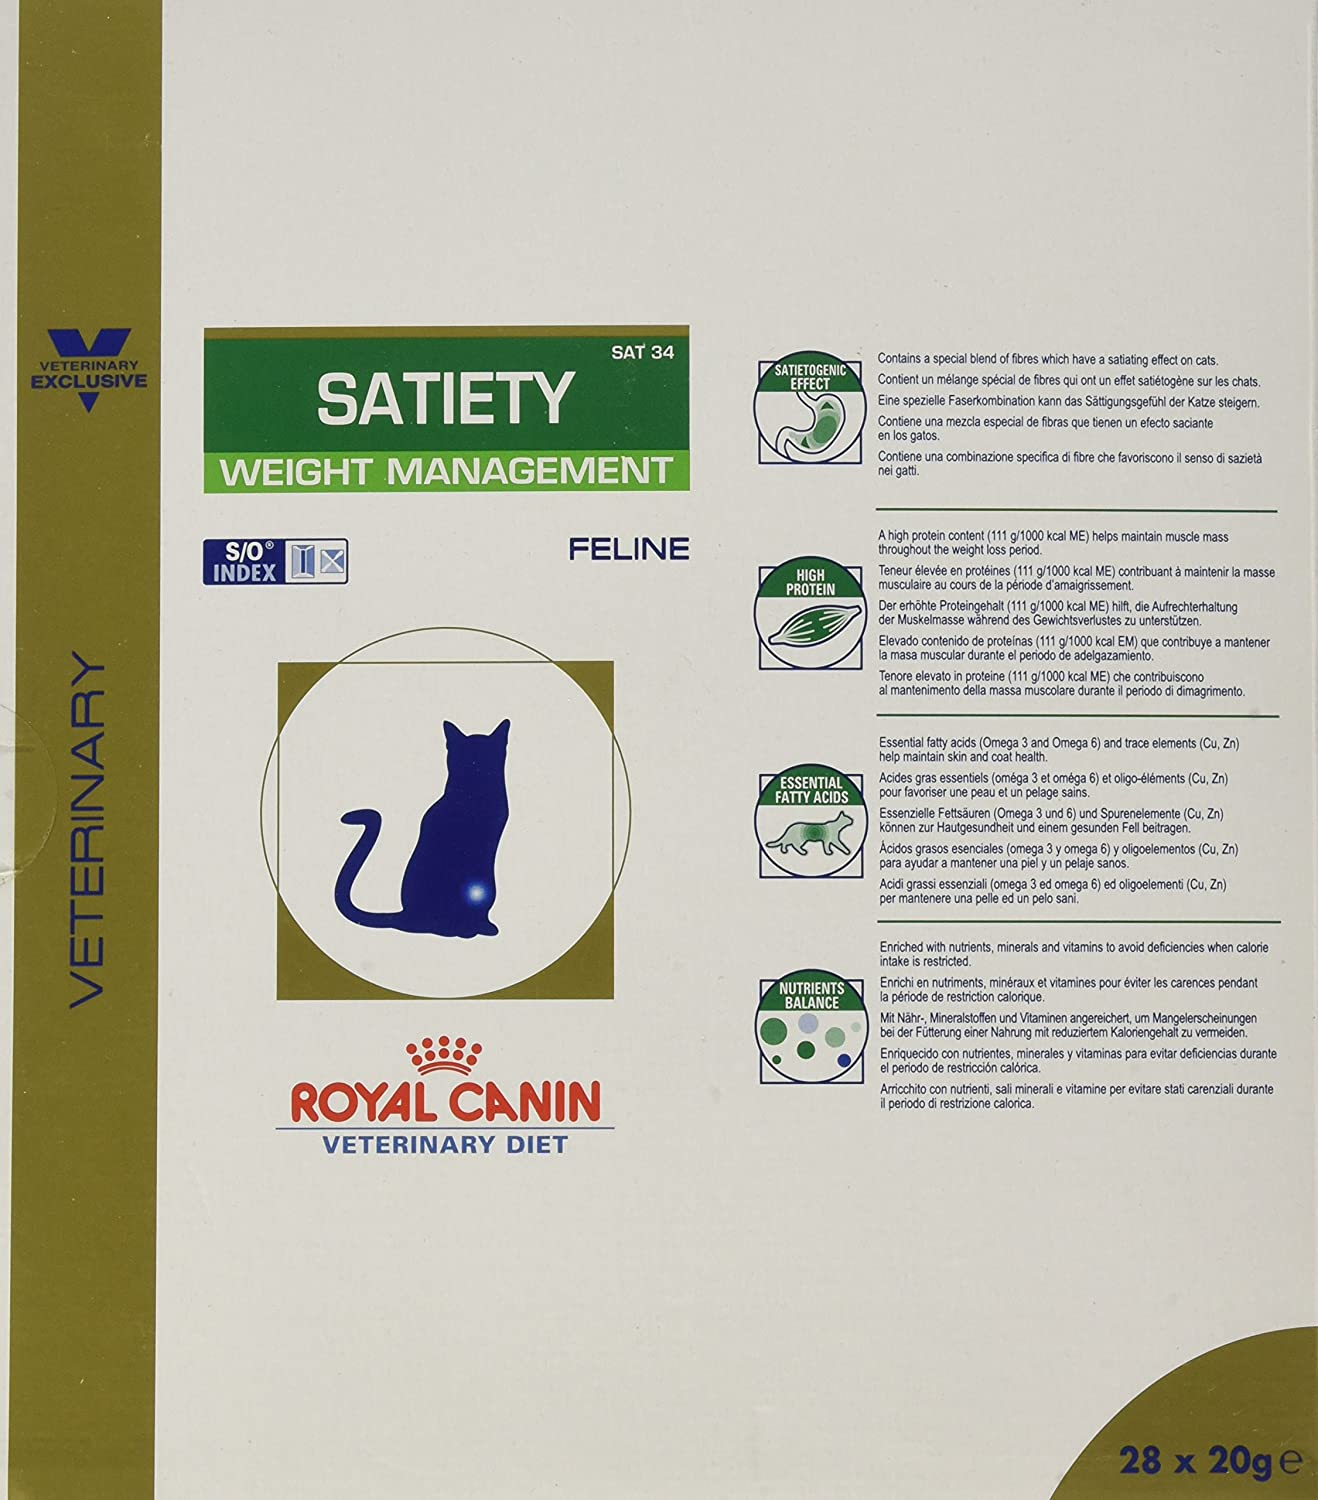 ROYAL CANIN Alimento para Gatos Satiety Support Weight Management SAT34-3.5 kg